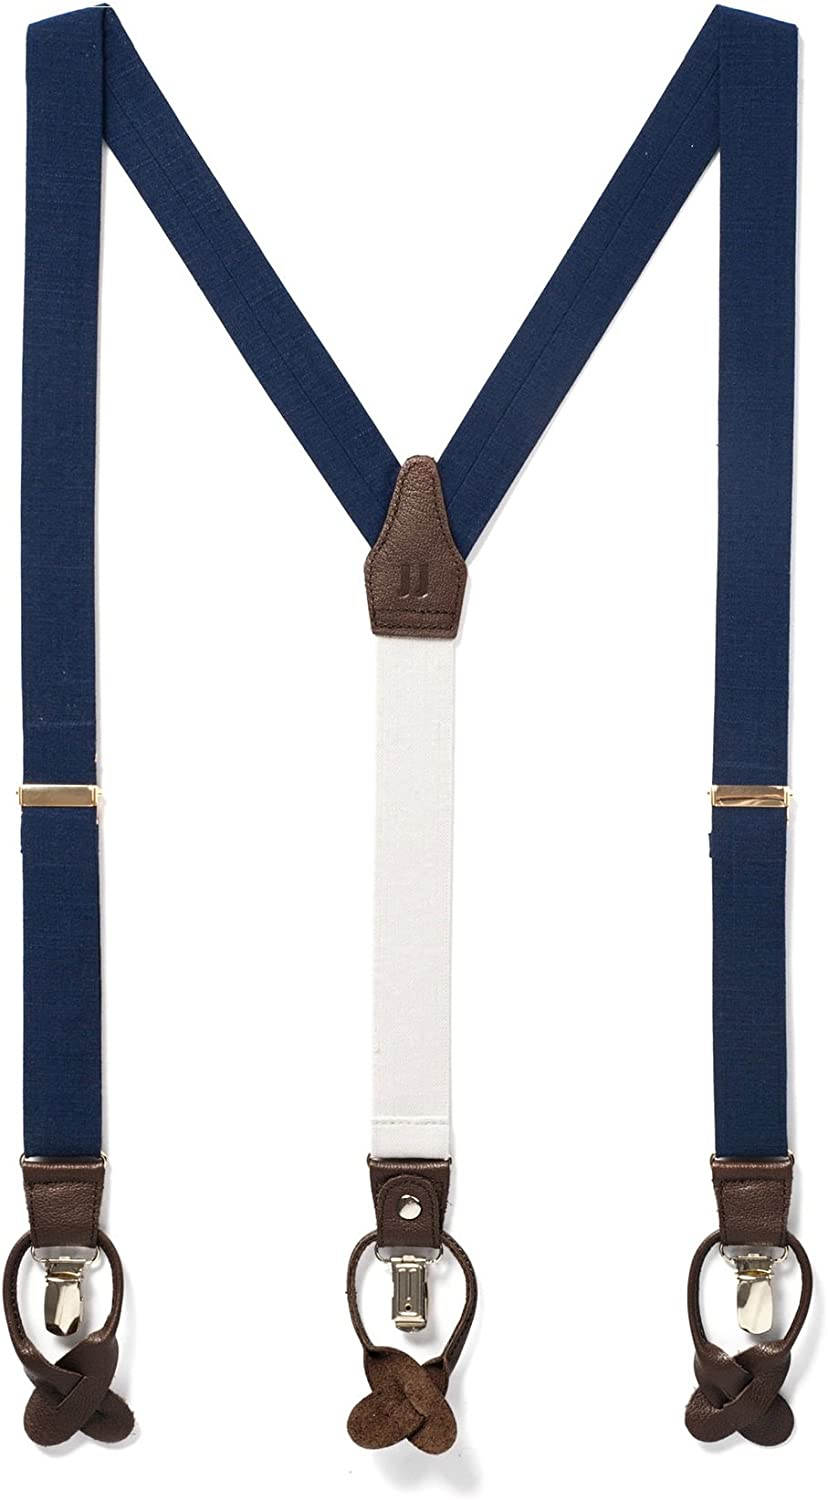 JJ SUSPENDERS Woven Textured Y Suspenders with 25% OFF D for ! Super beauty product restock quality top! Men Leather